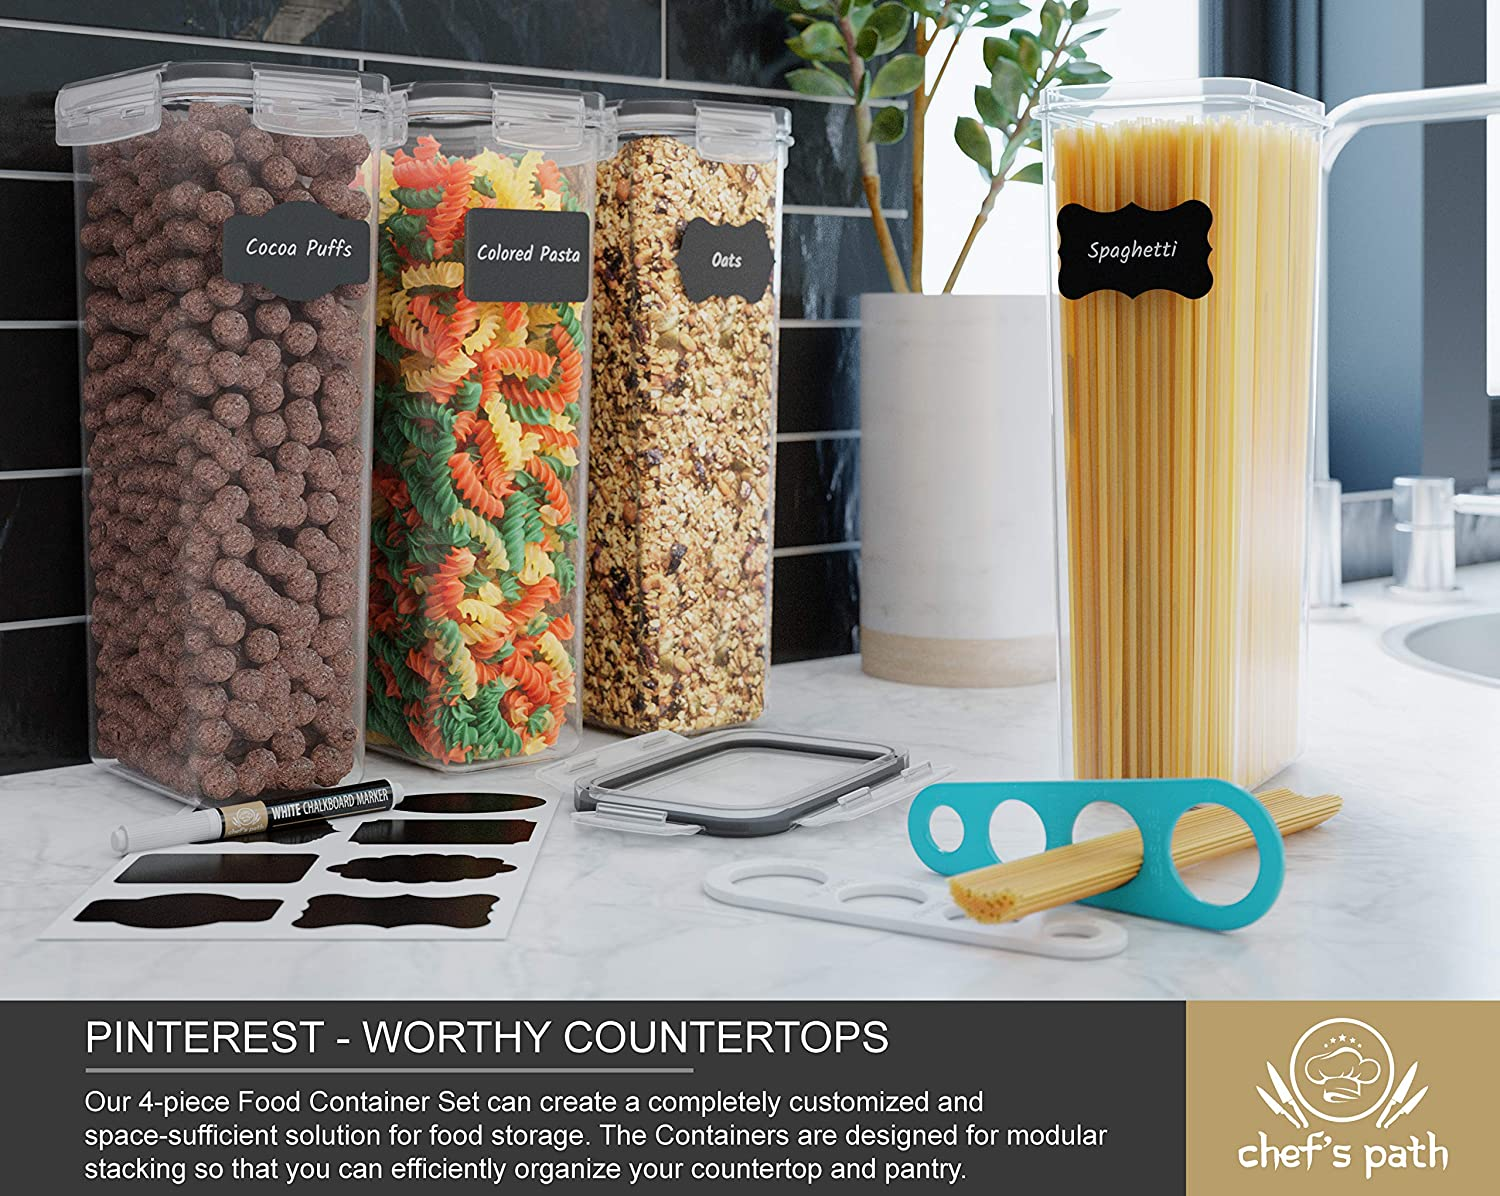 Chef's Path Airtight Tall Food Storage Container Set - Ideal for Spaghetti, Noodles & Pasta - 4 PC/All Same Size - Kitchen & Pantry Organization - Plastic Canisters with Durable Lids (Black): Kitchen & Dining